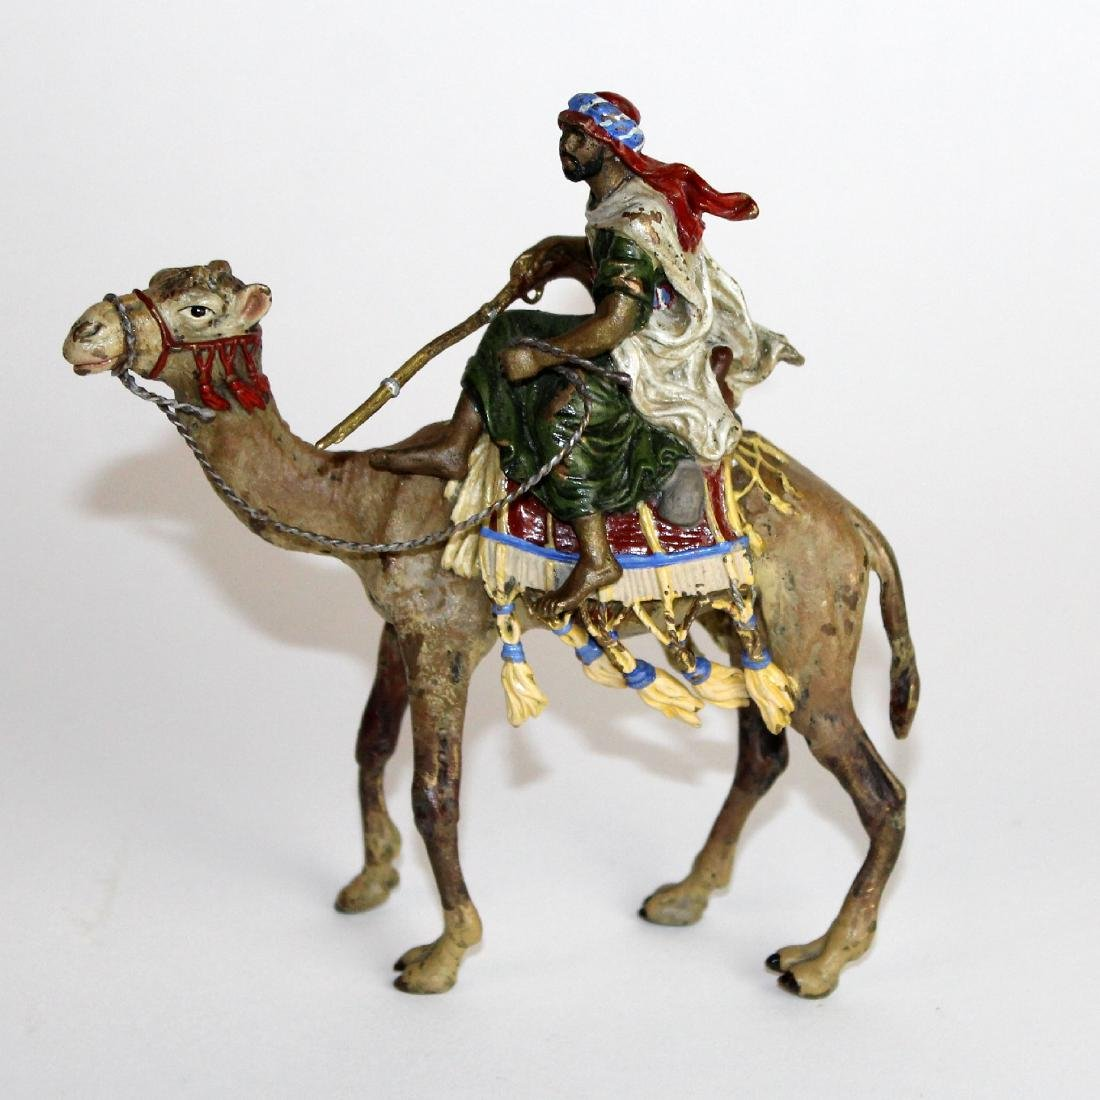 Cold painted bronze figurine of man on camel